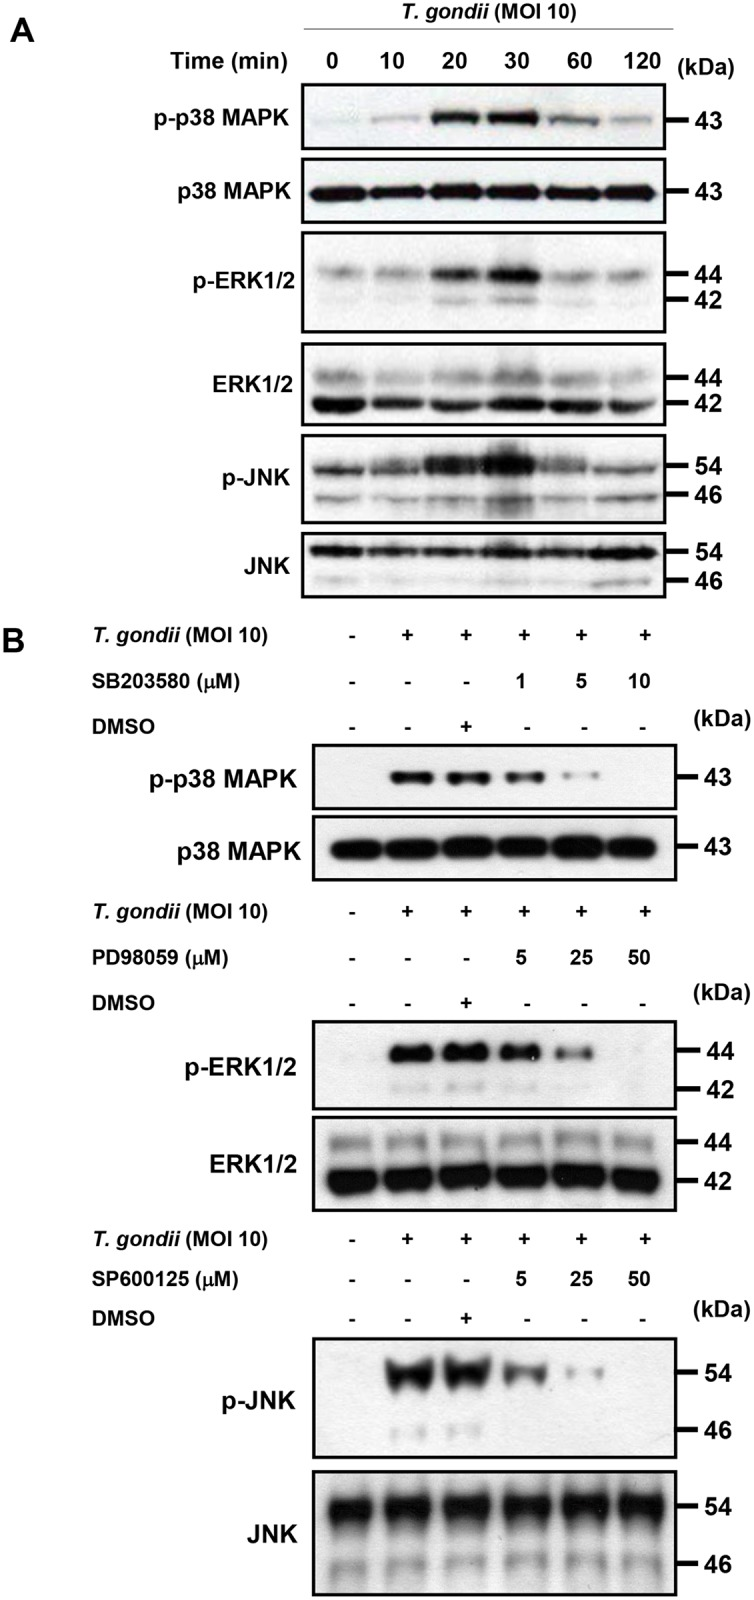 Regulation of p38 MAPK, ERK1/2 or JNK activation in T . gondii -infected THP-1 cells by specific inhibitors. (A)THP-1 cells were infected with T . gondii at MOI 10 for the indicated time and the phosphorylation levels of p38 MAPK, ERK1/2 and JNK was checked by western blot. (B) THP-1 cells were pretreated with the p38 inhibitor (SB203580), ERK inhibitor (PD98059), or JNK inhibitor (SP600125) for the indicated concentration for 1 h and infected with T . gondii at MOI 10 for 30 min. The phosphorylation levels of p38 MAPK, ERK1/2 and JNK was checked. A representative experiment of three independent replicates with similar results is shown.